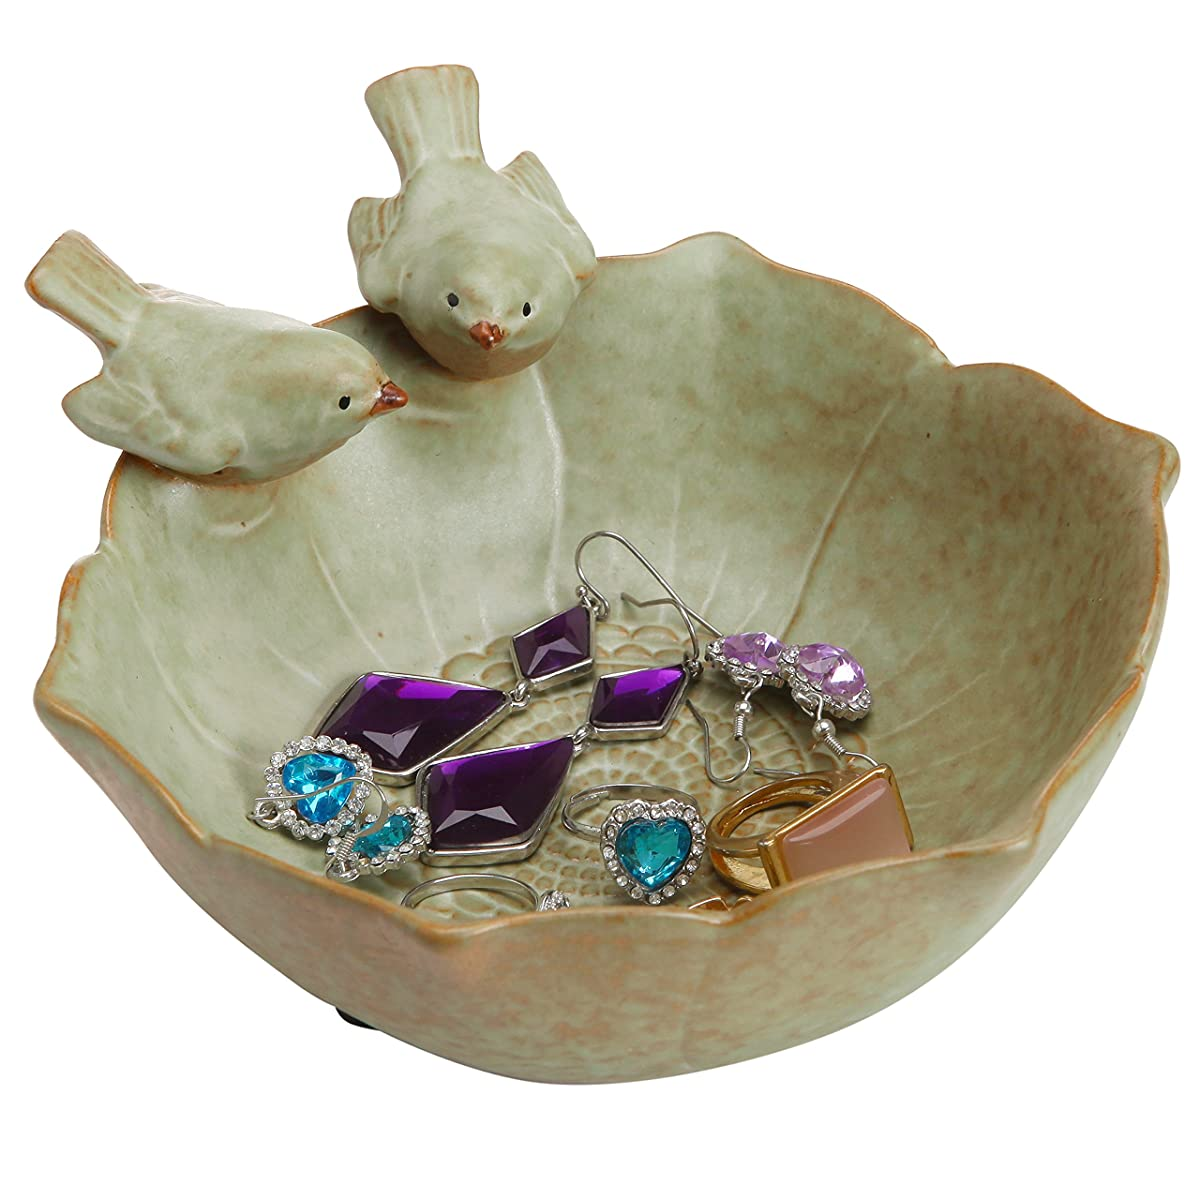 Decorative 2 Birds Garden Design Ceramic Green Serving Bowl / Jewelry Tray / Candy & Nut Dish - MyGift